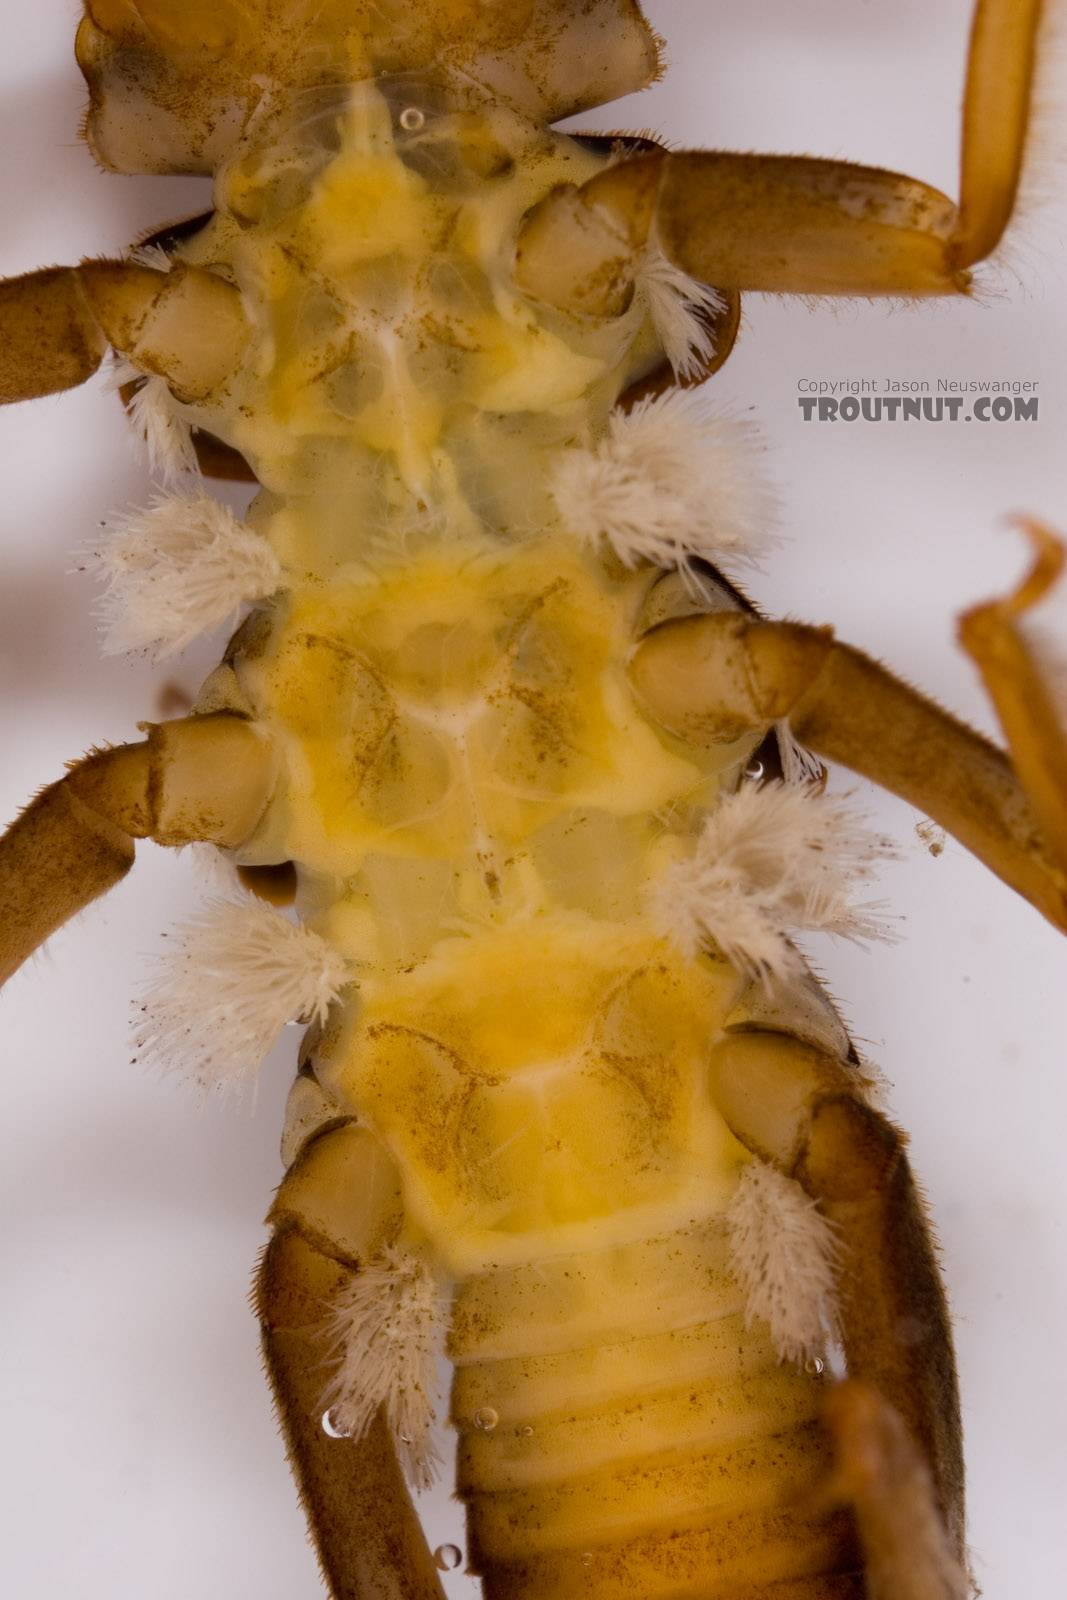 Paragnetina media (Embossed Stonefly) Stonefly Larva from Fall Creek in New York